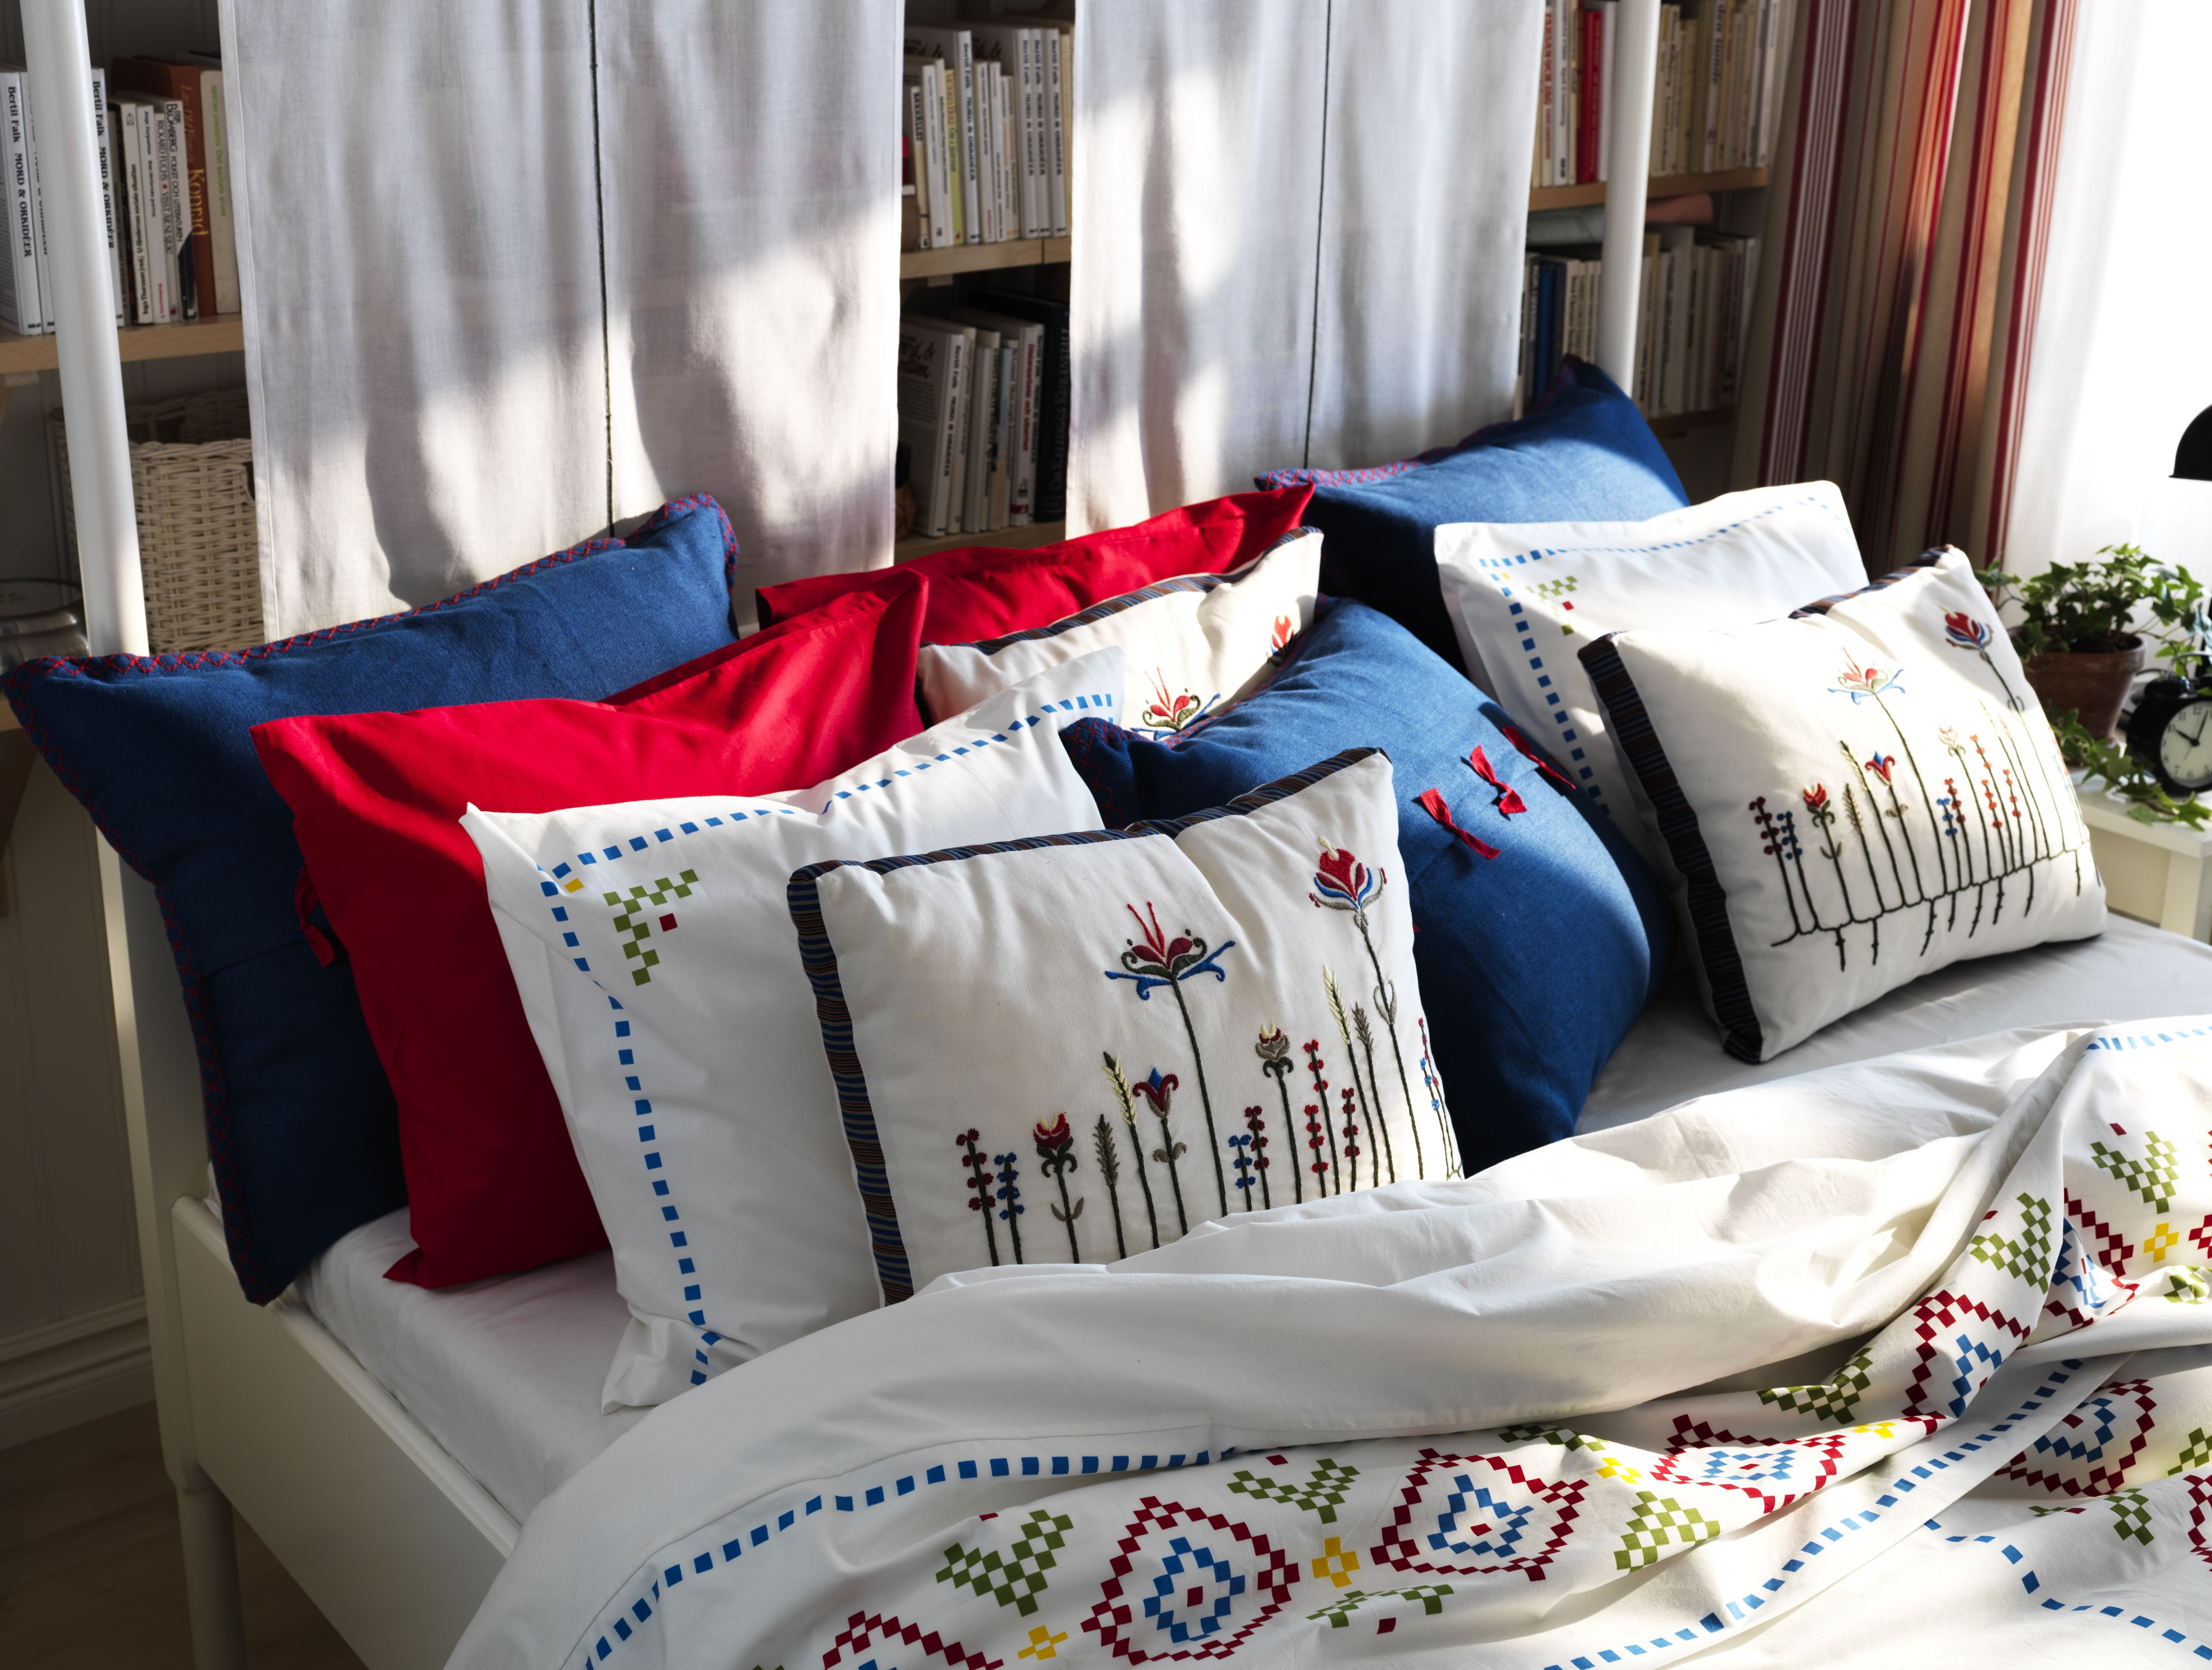 The birgit cushion is embroidered with yarn in different colours